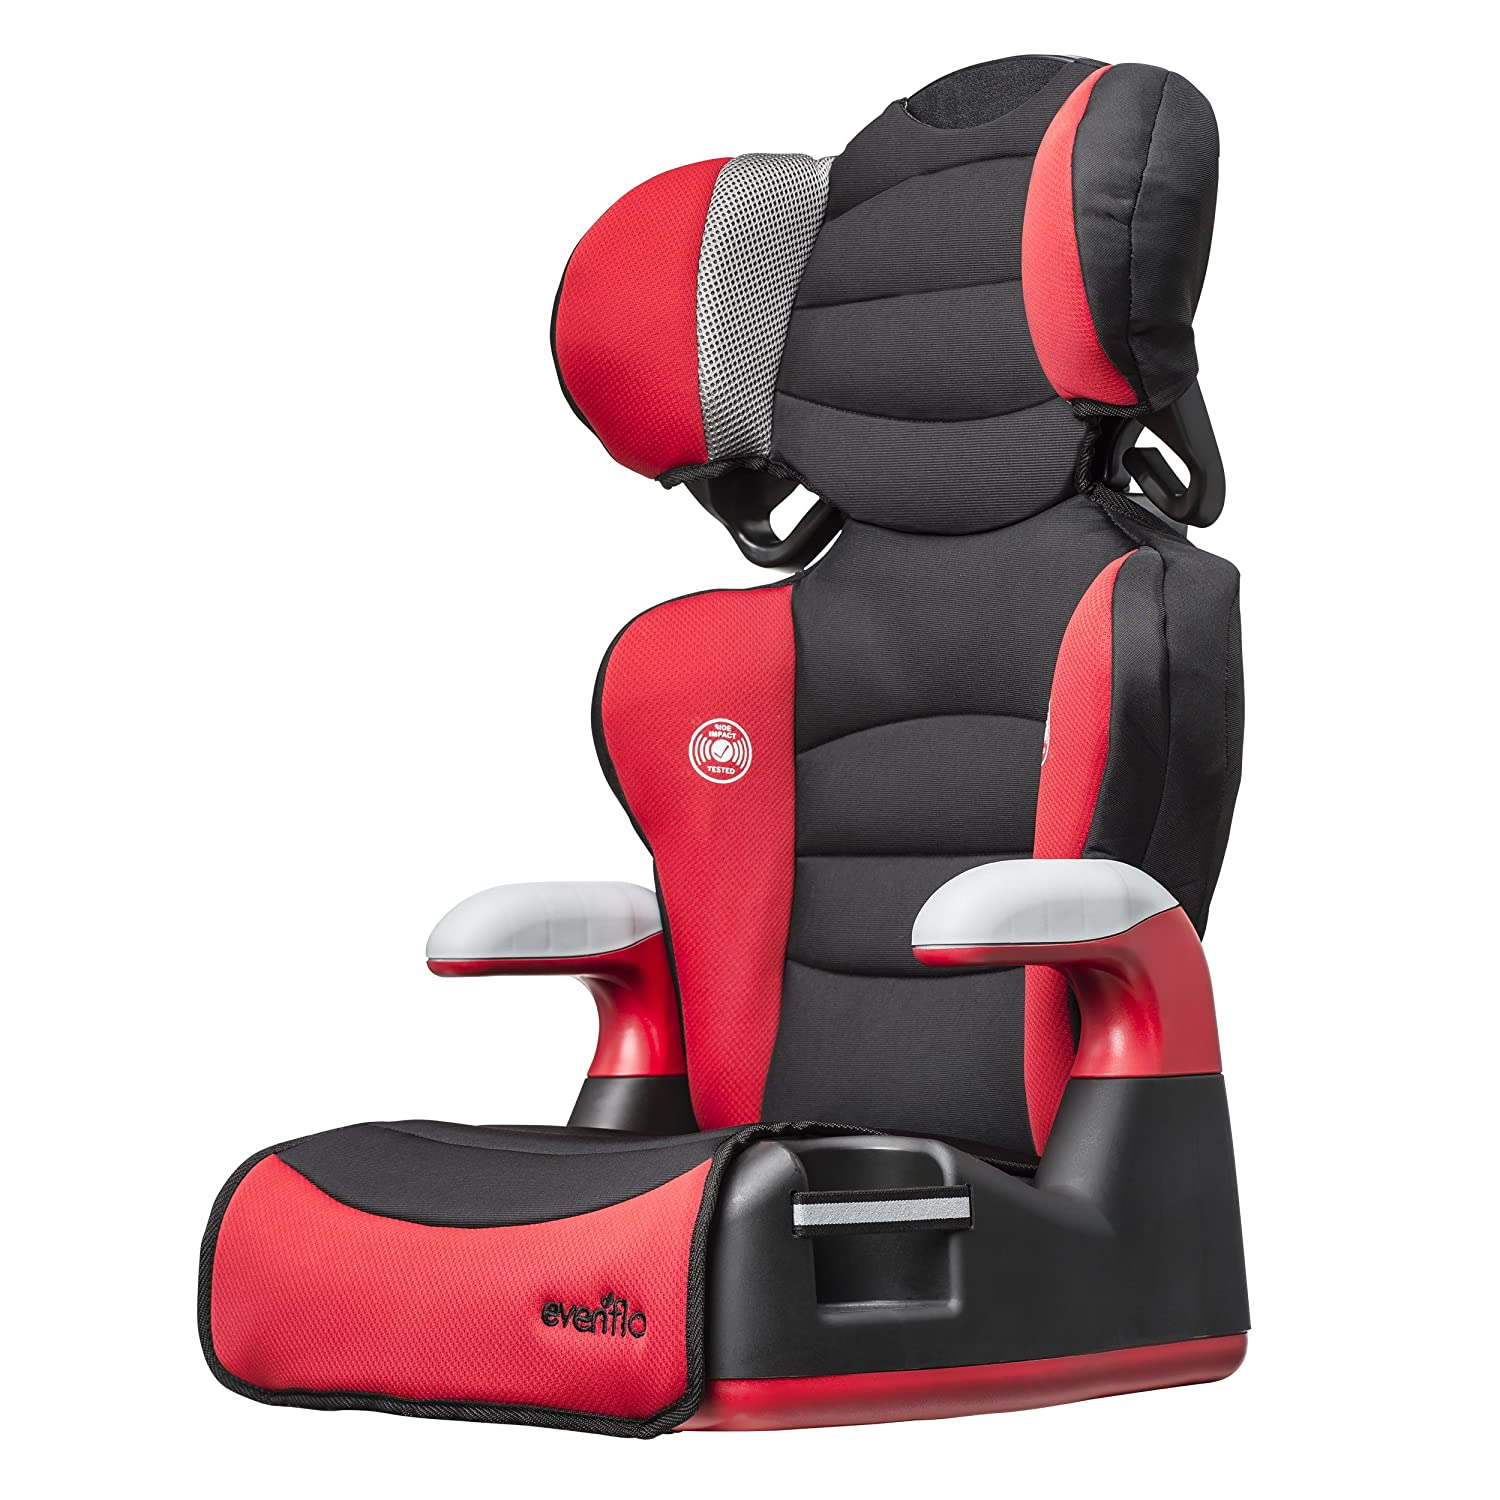 Evenflo High Back belt positioning car seat